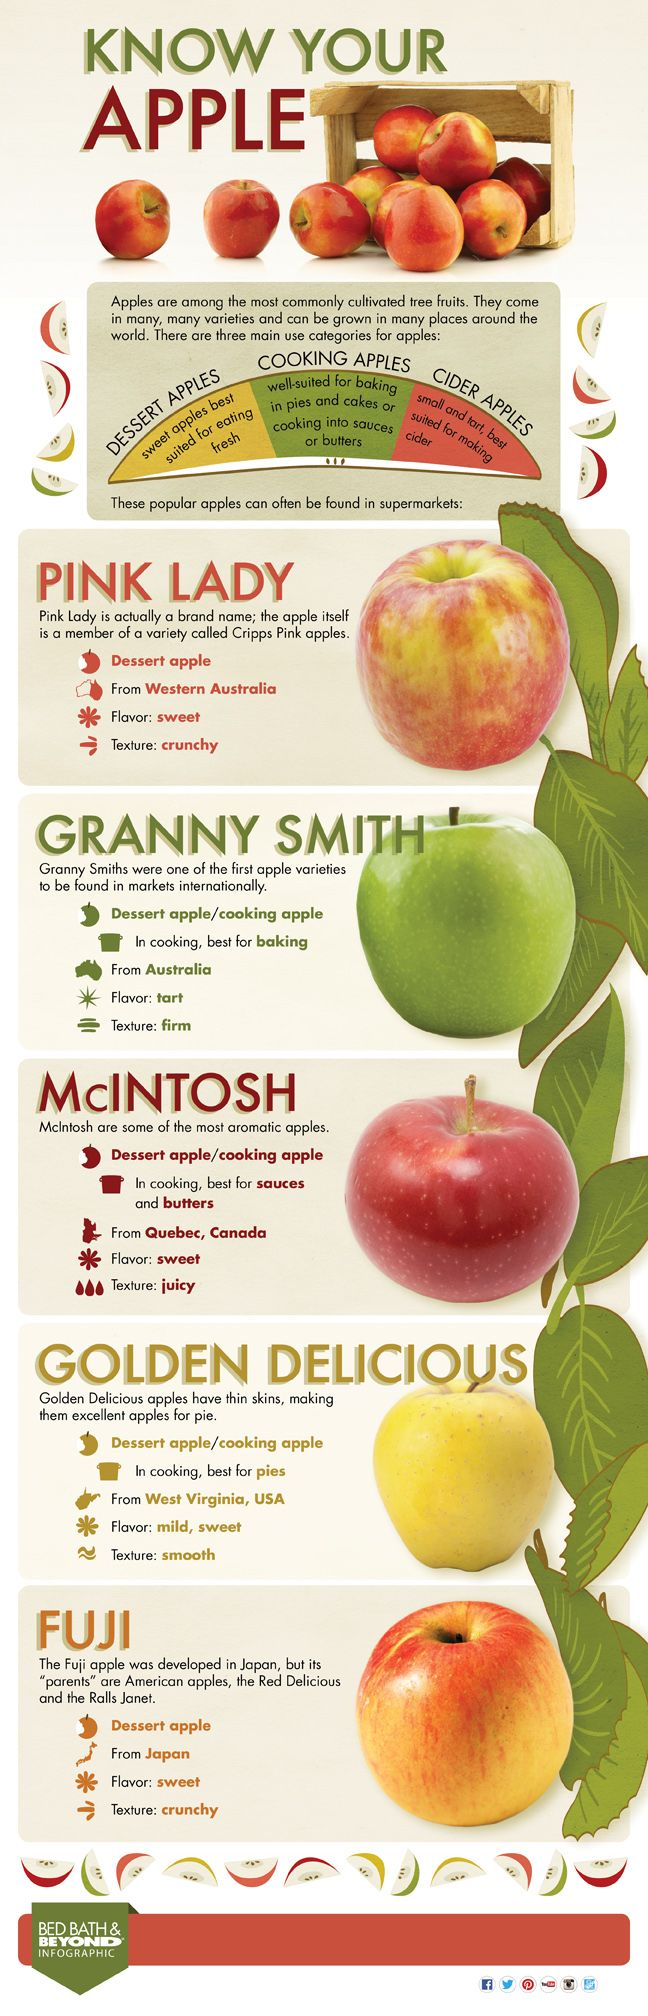 Know Your Apples [infographic] (Above & Beyond — The Bed Bath & Beyond Blog)